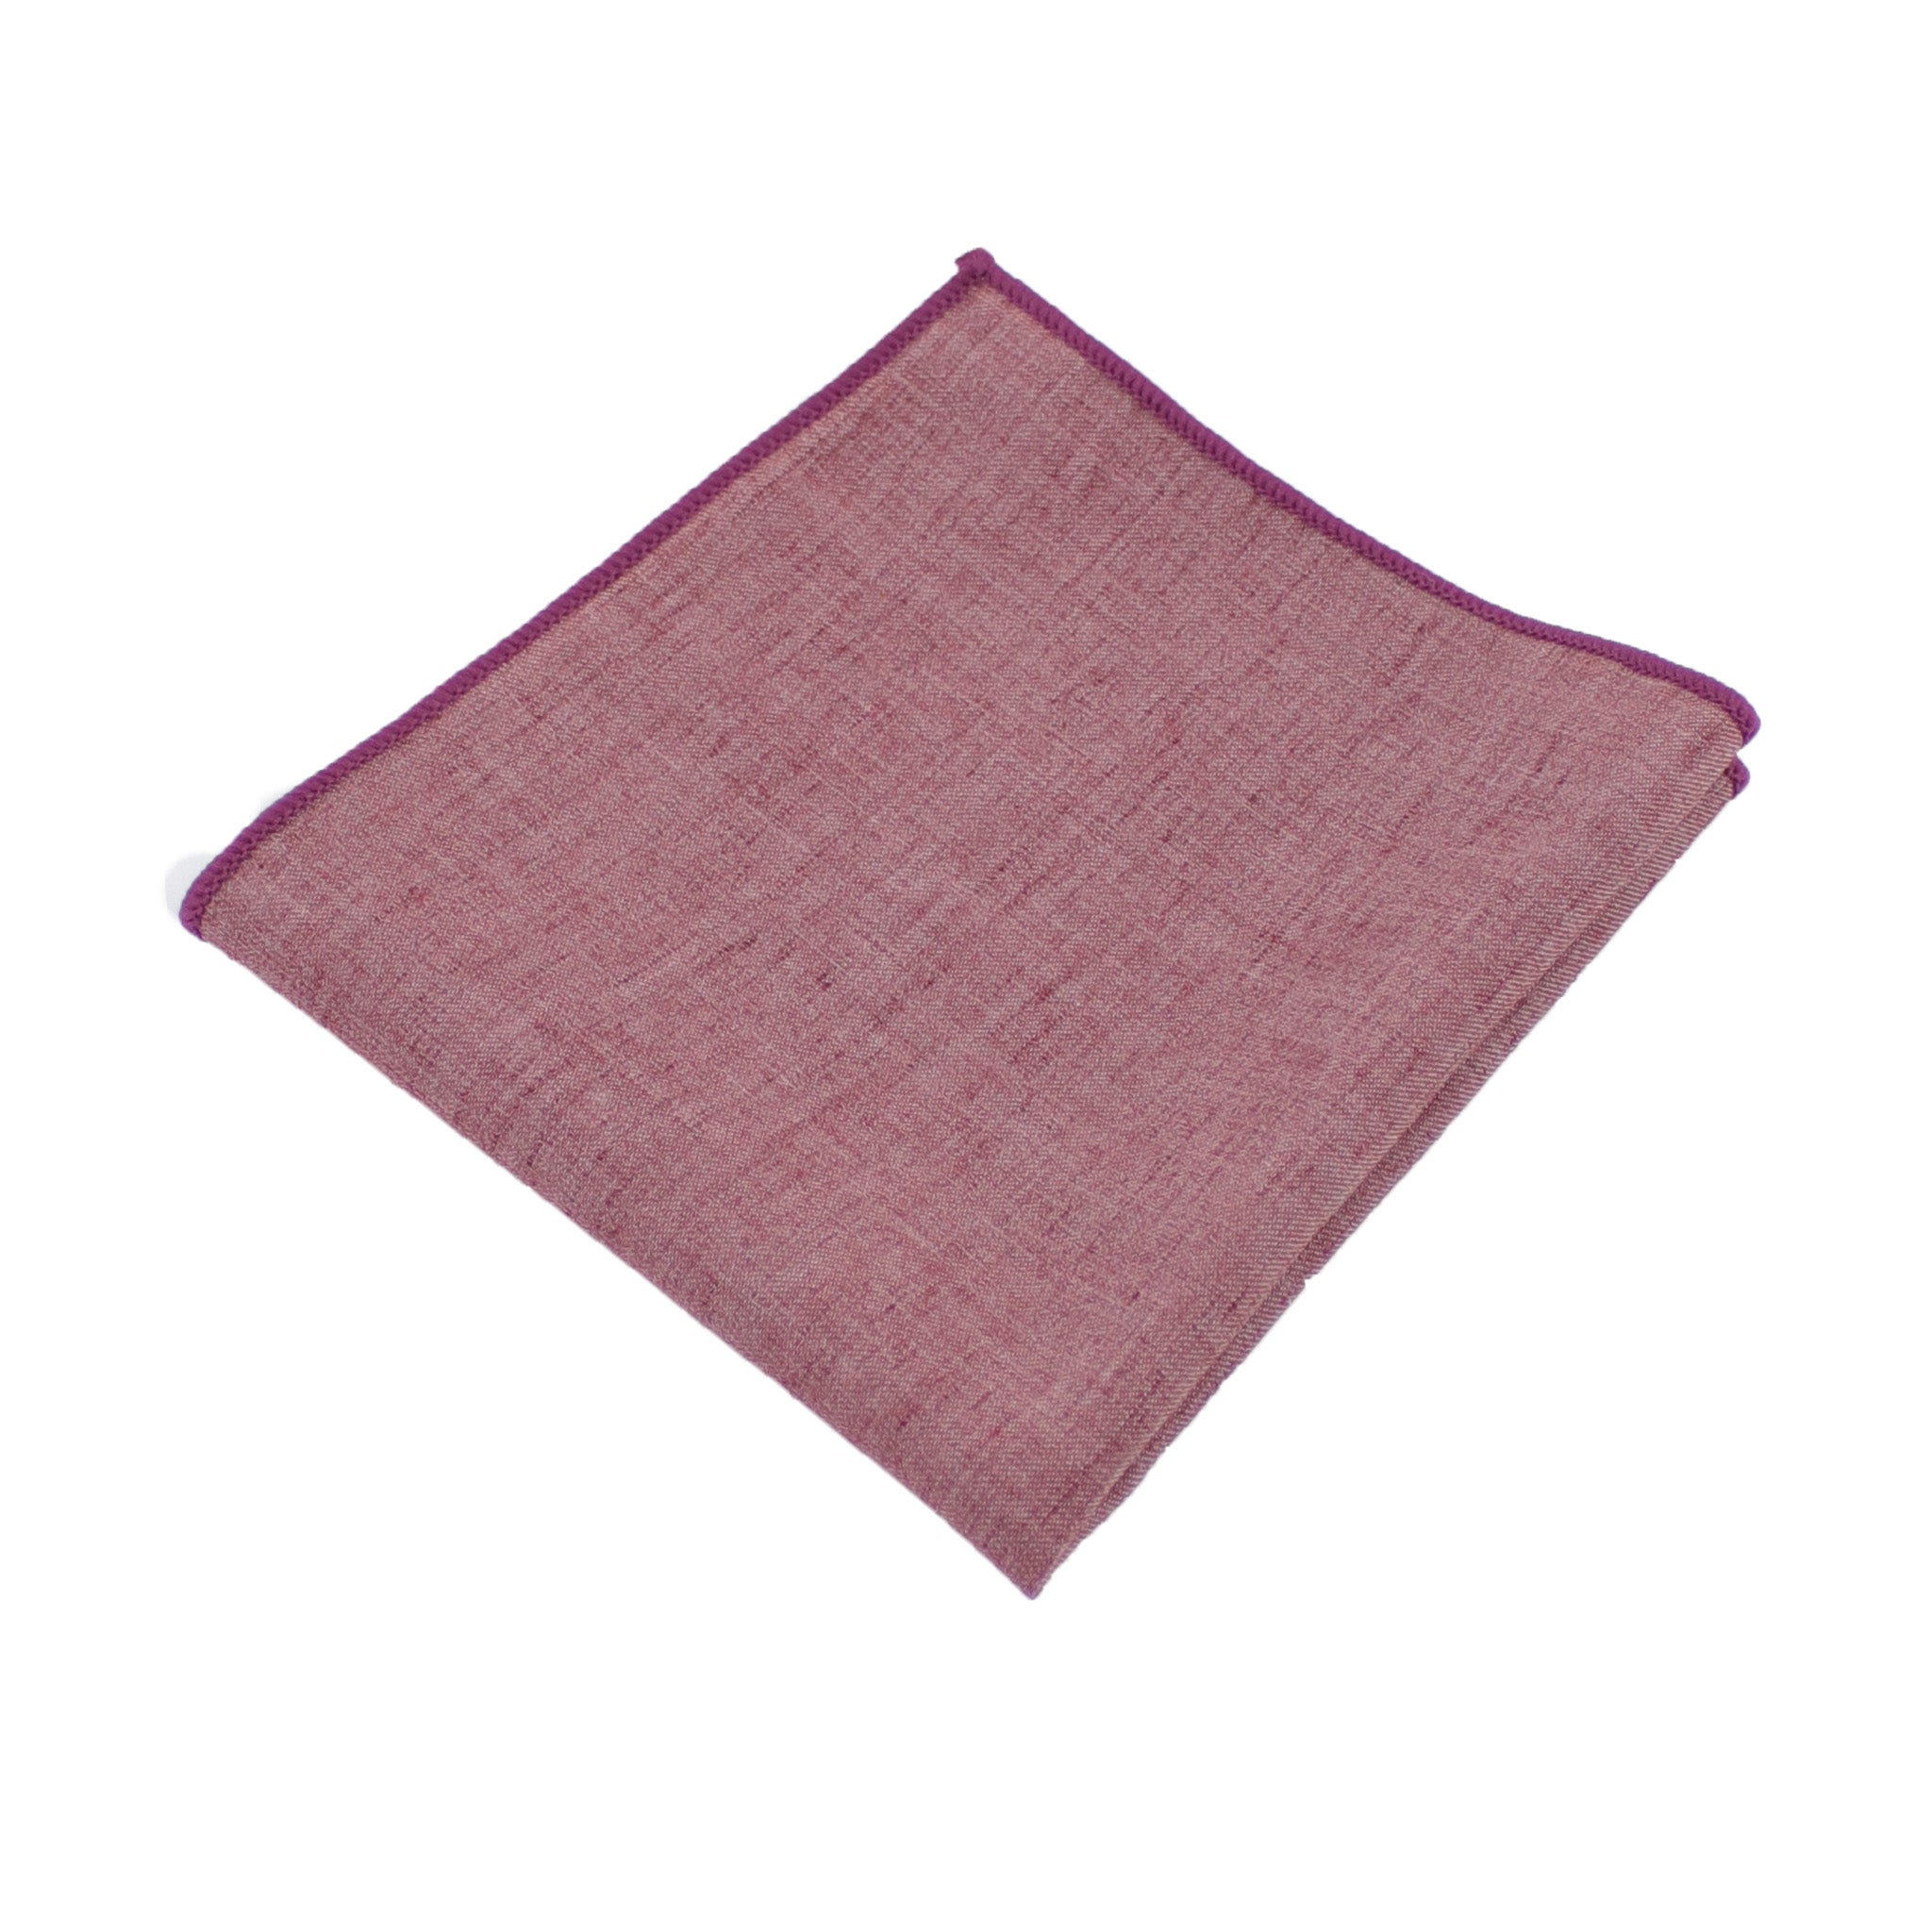 Lightweight Red Pocket Square from DIBI